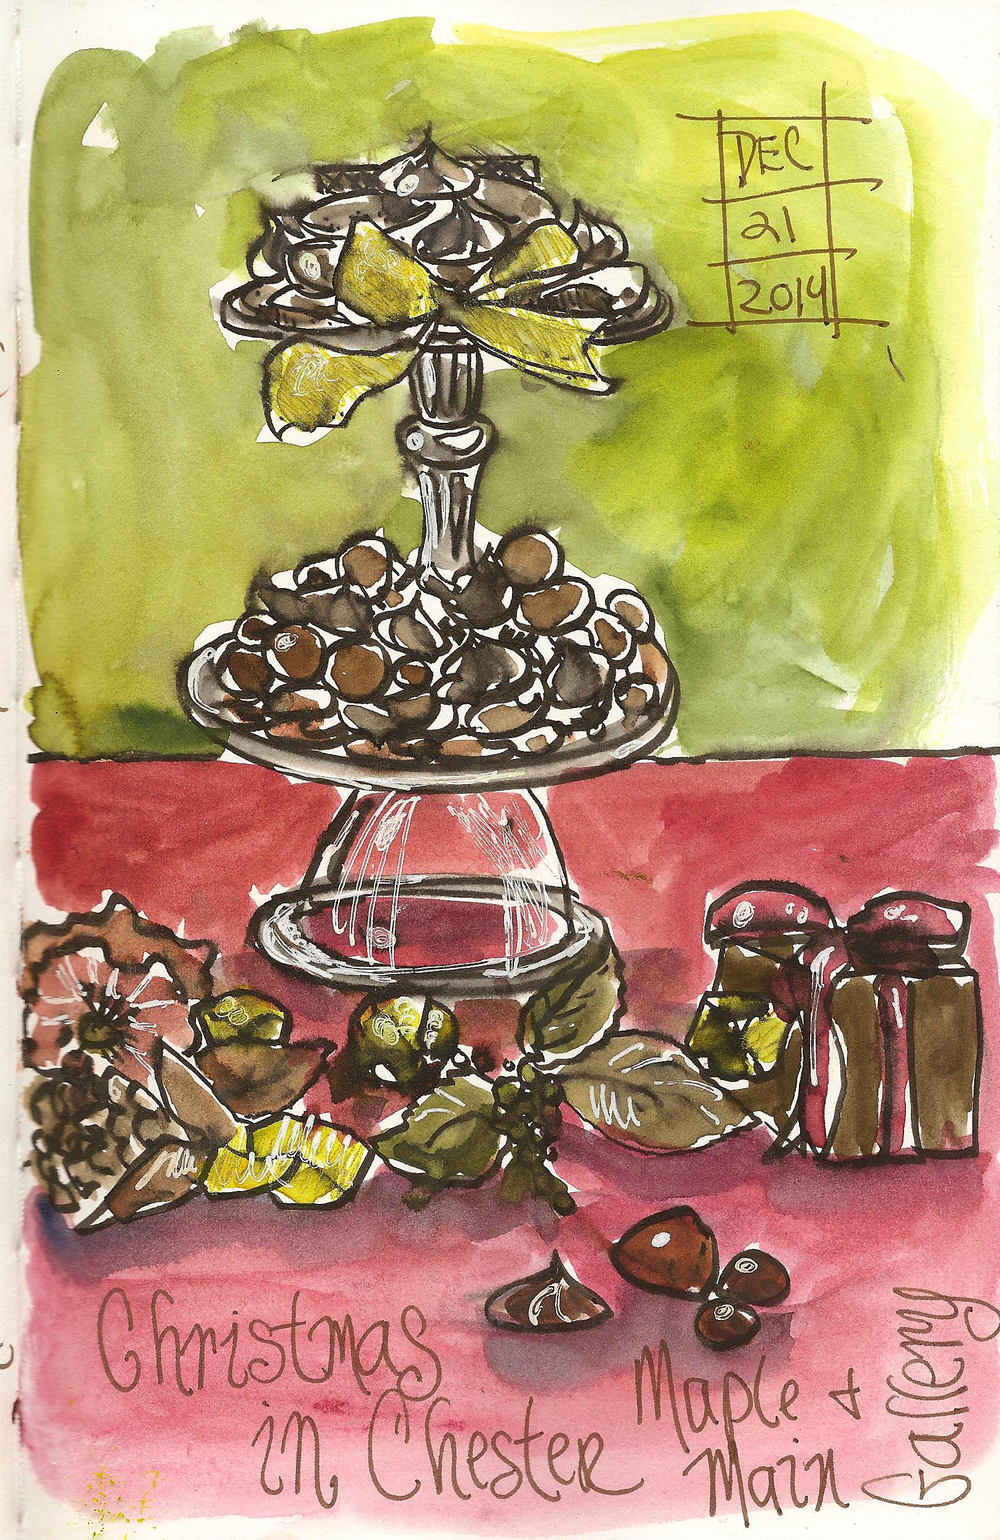 Chocolate sketching with Jan Blencowe on Dec. 20